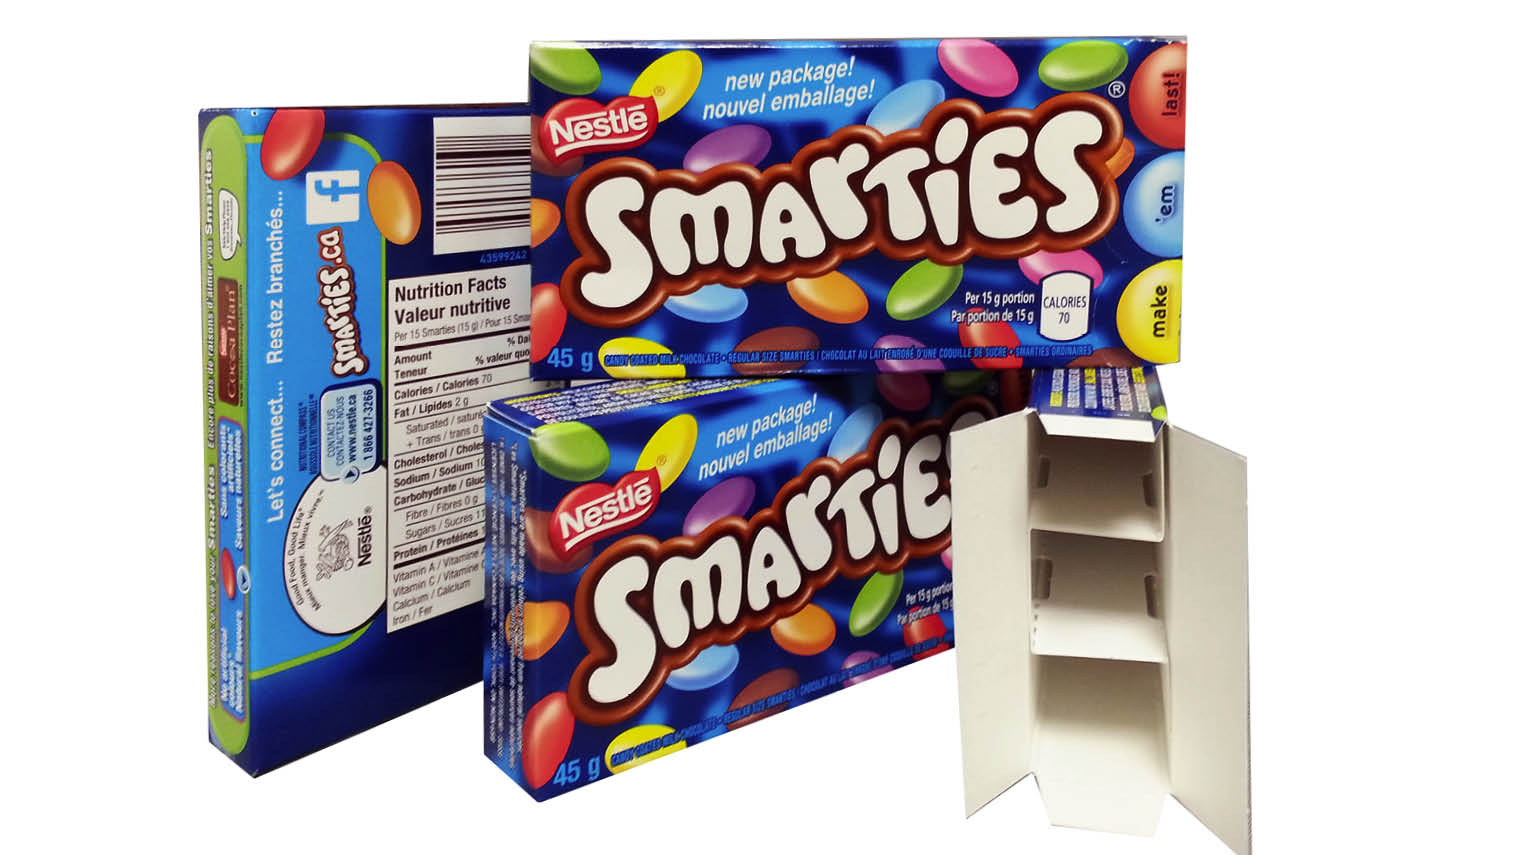 smarties innovative packaging design with compartments